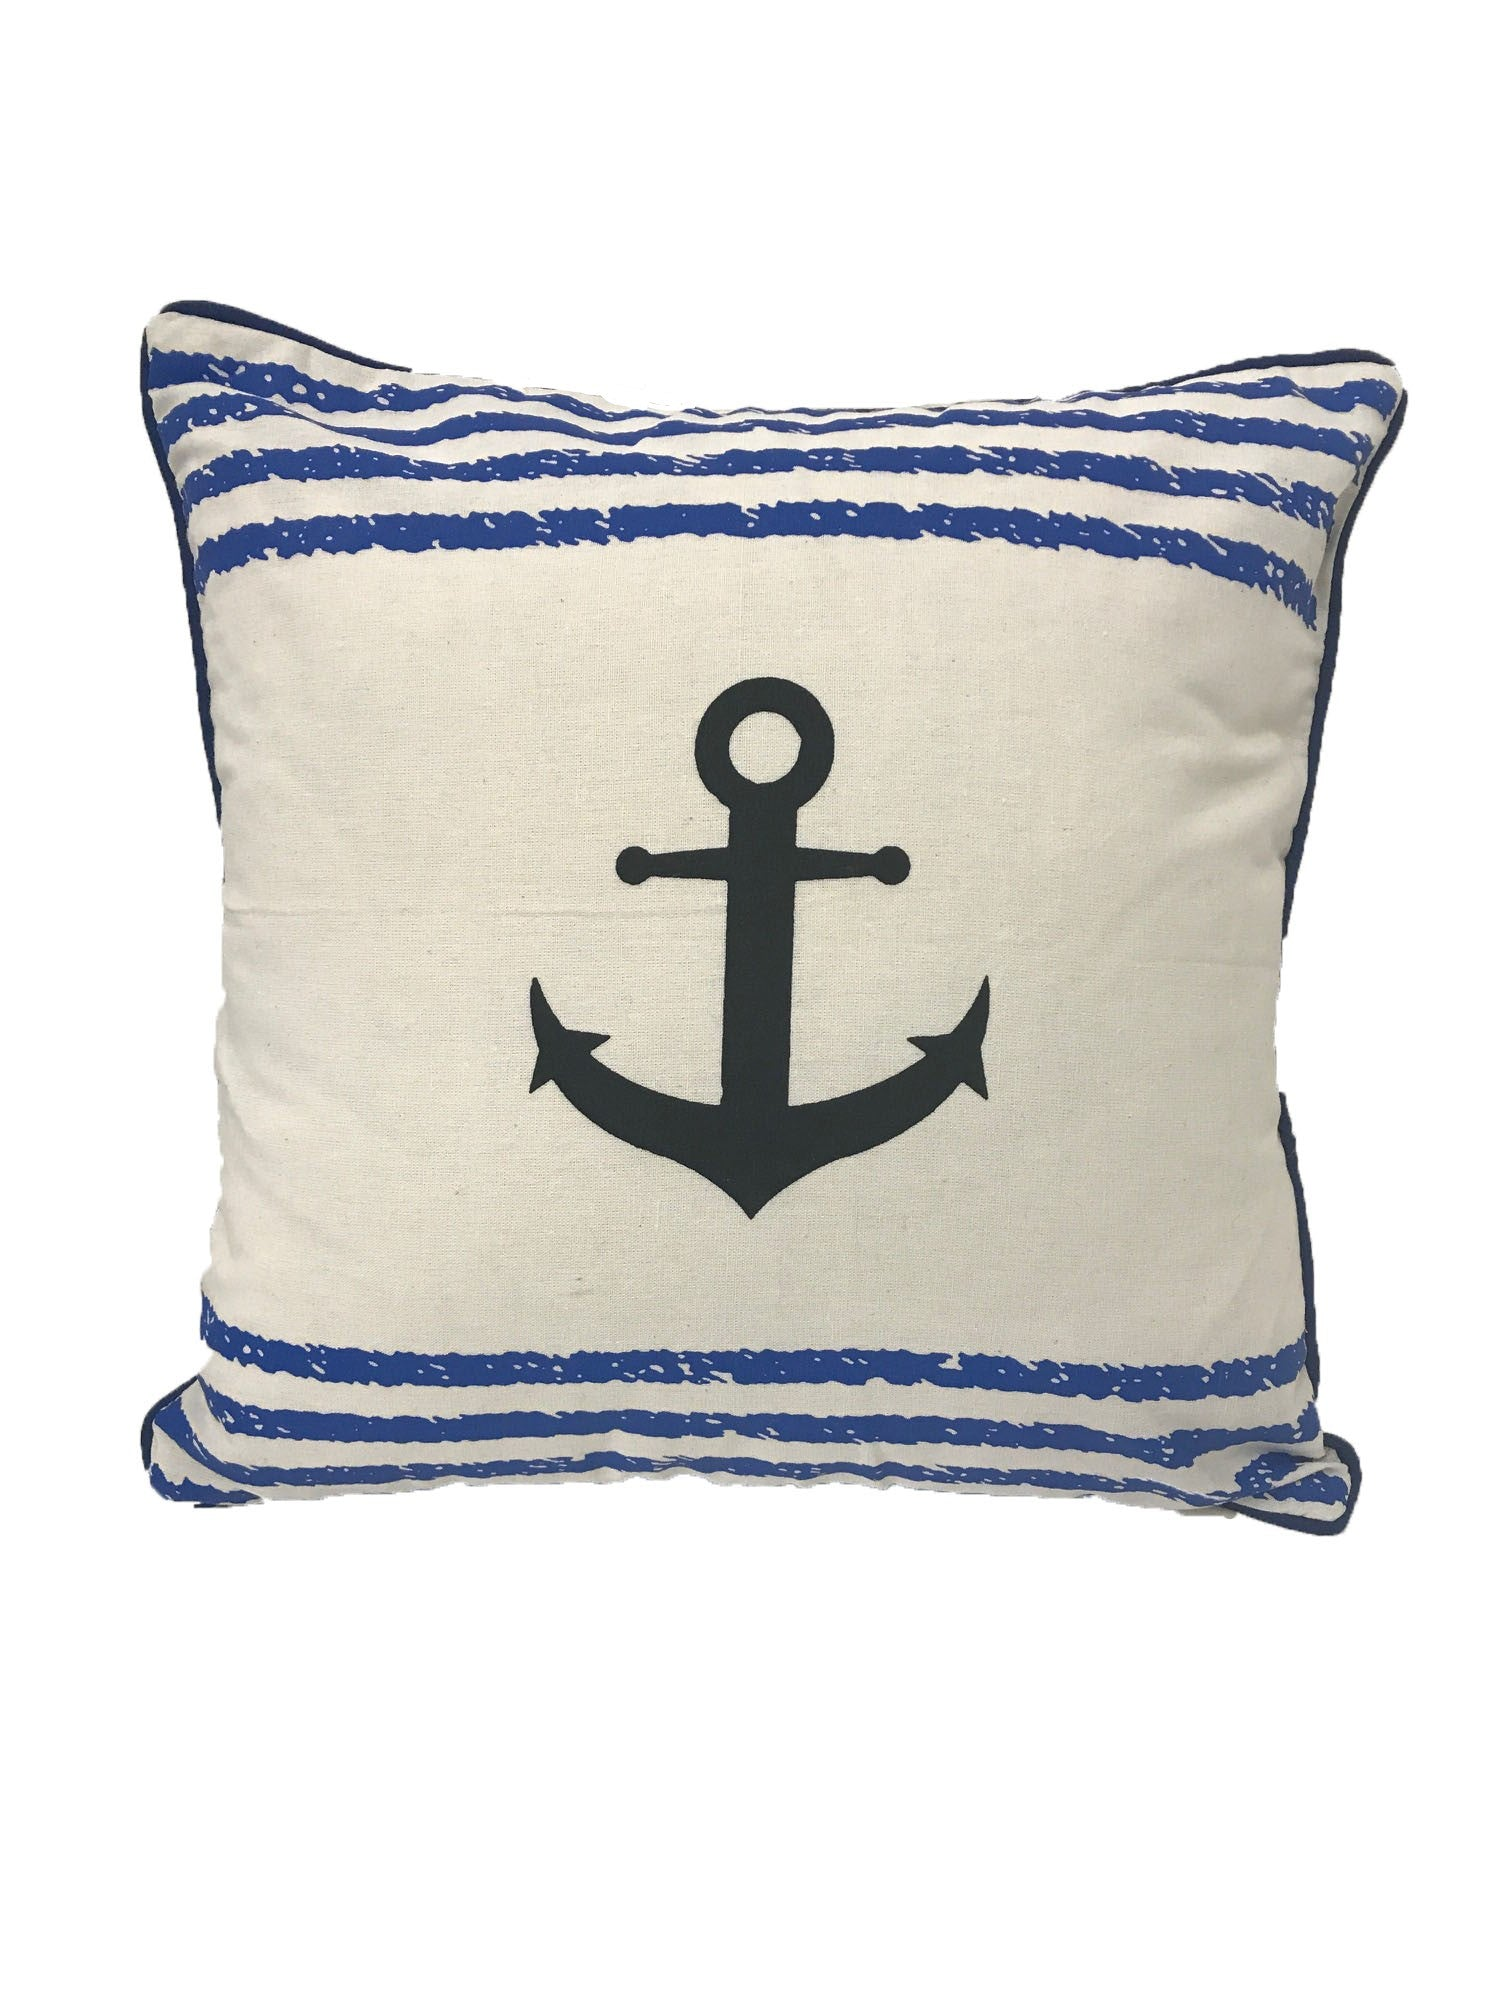 cushion - anchor - blue stripes - 40cm - COMPLETE